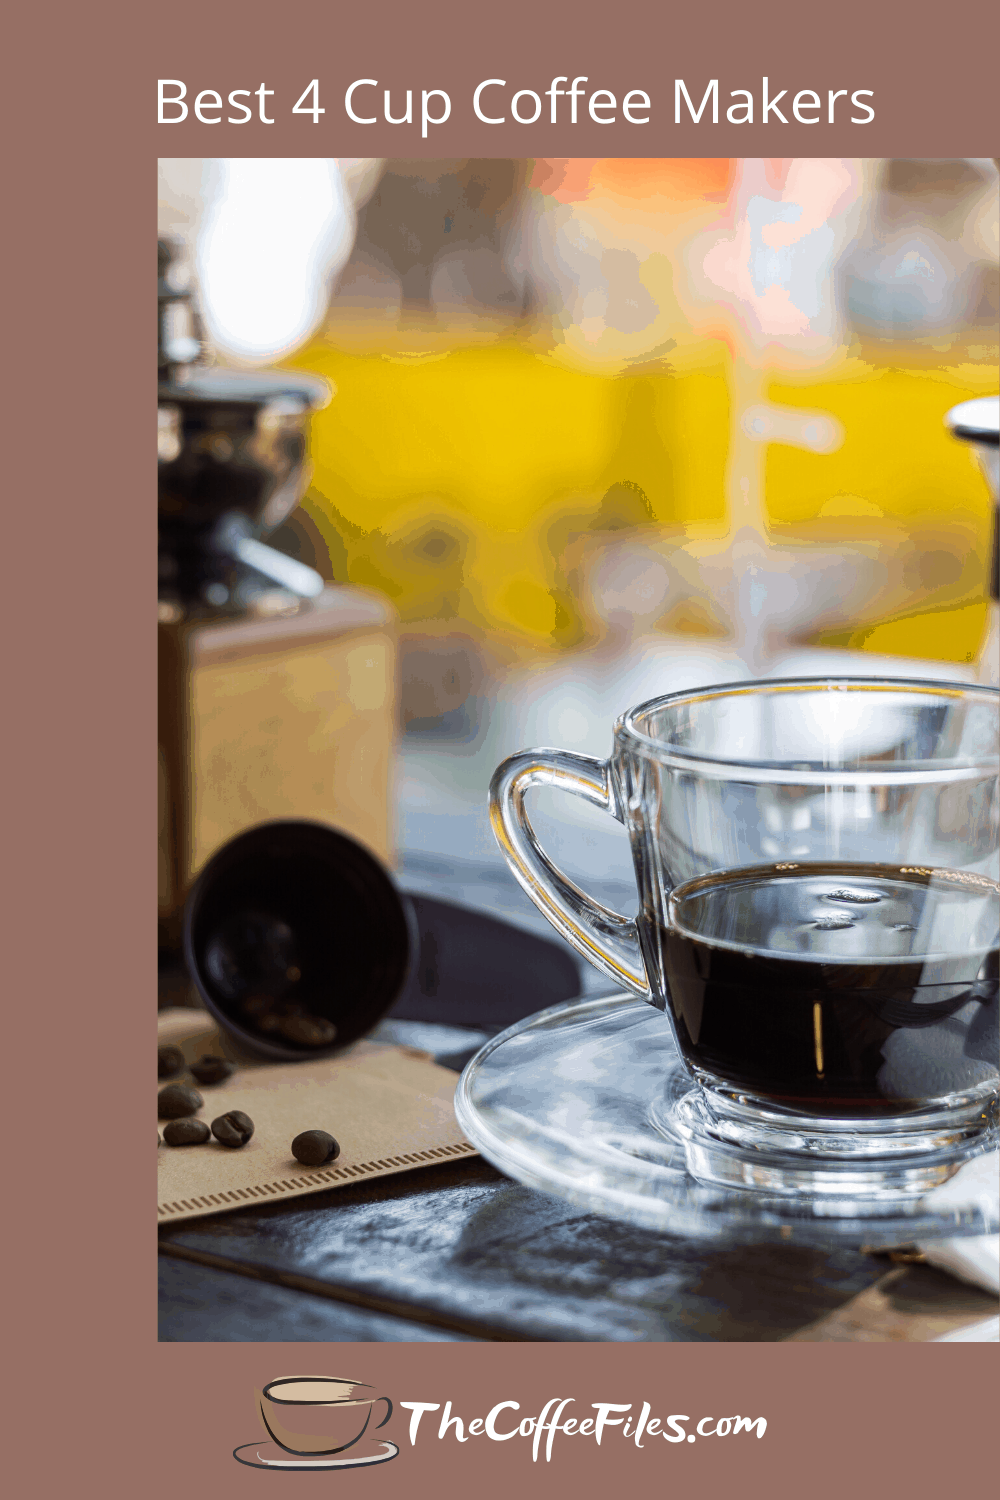 Searching for the best 4 cup coffee maker? We've done the hard work for you and have the top-rated coffee makers right here for your review. Easy peasy.